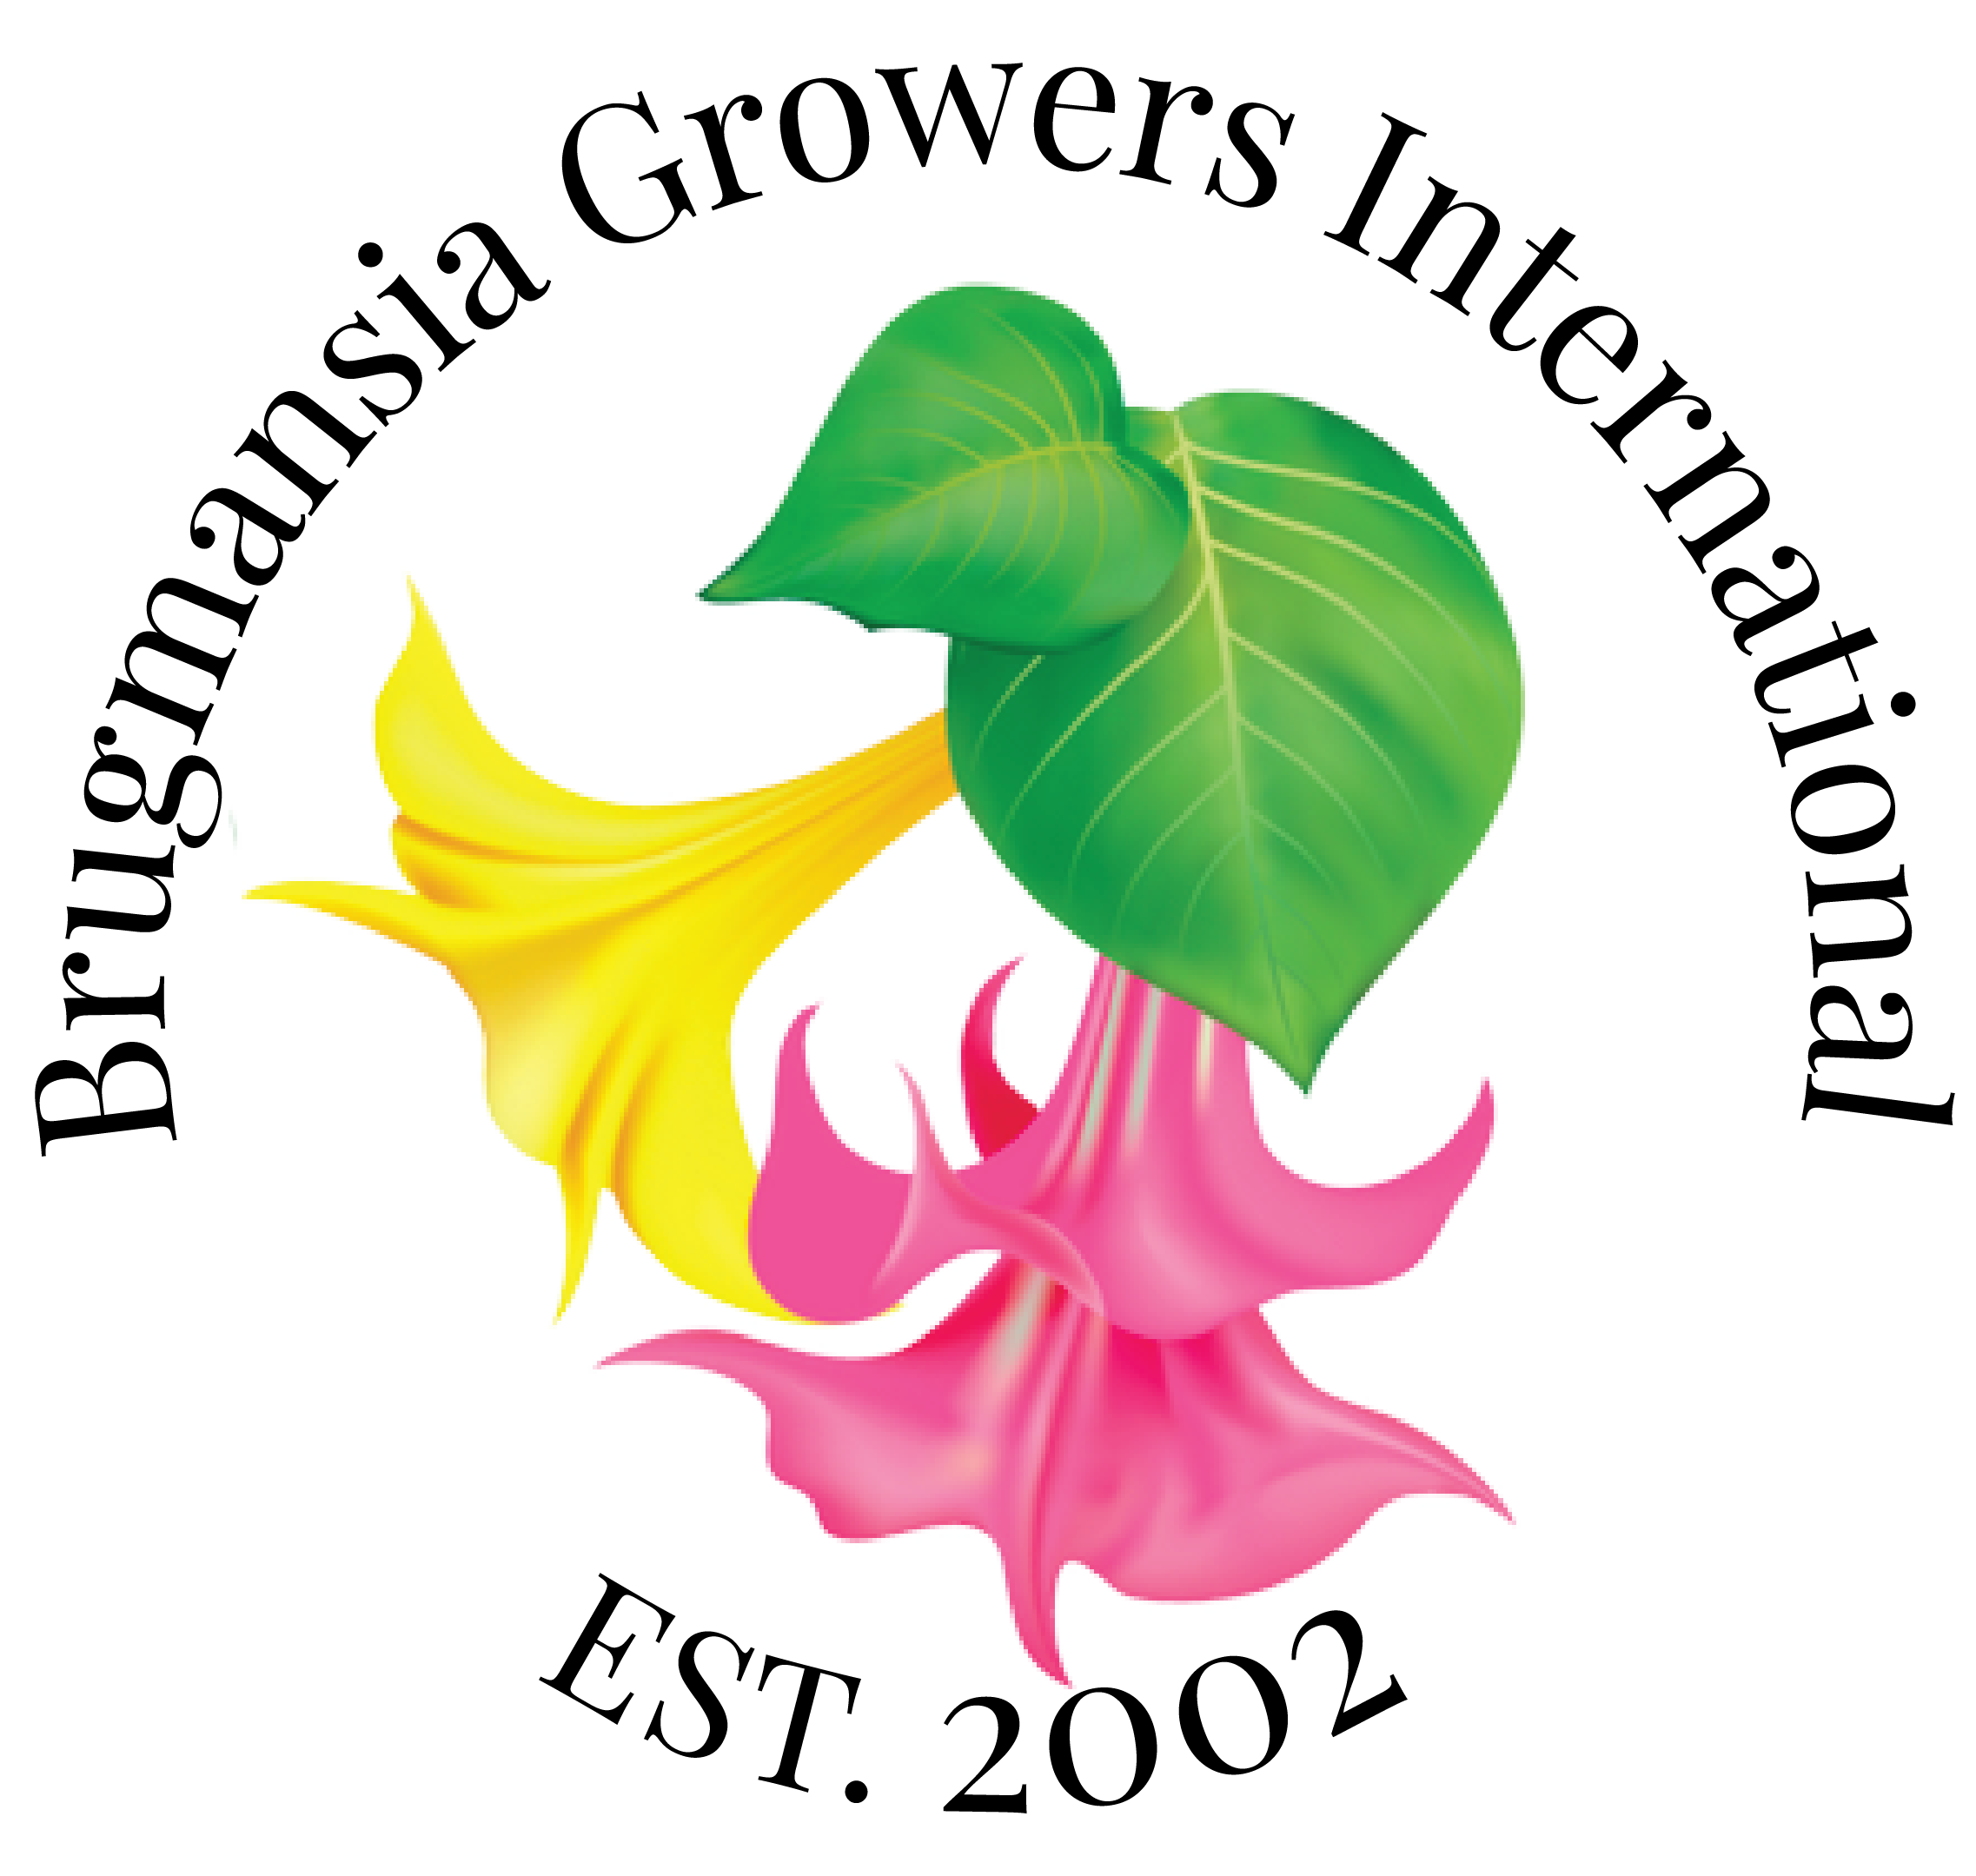 Tips for growing healthy. Seedling clipart growth rate